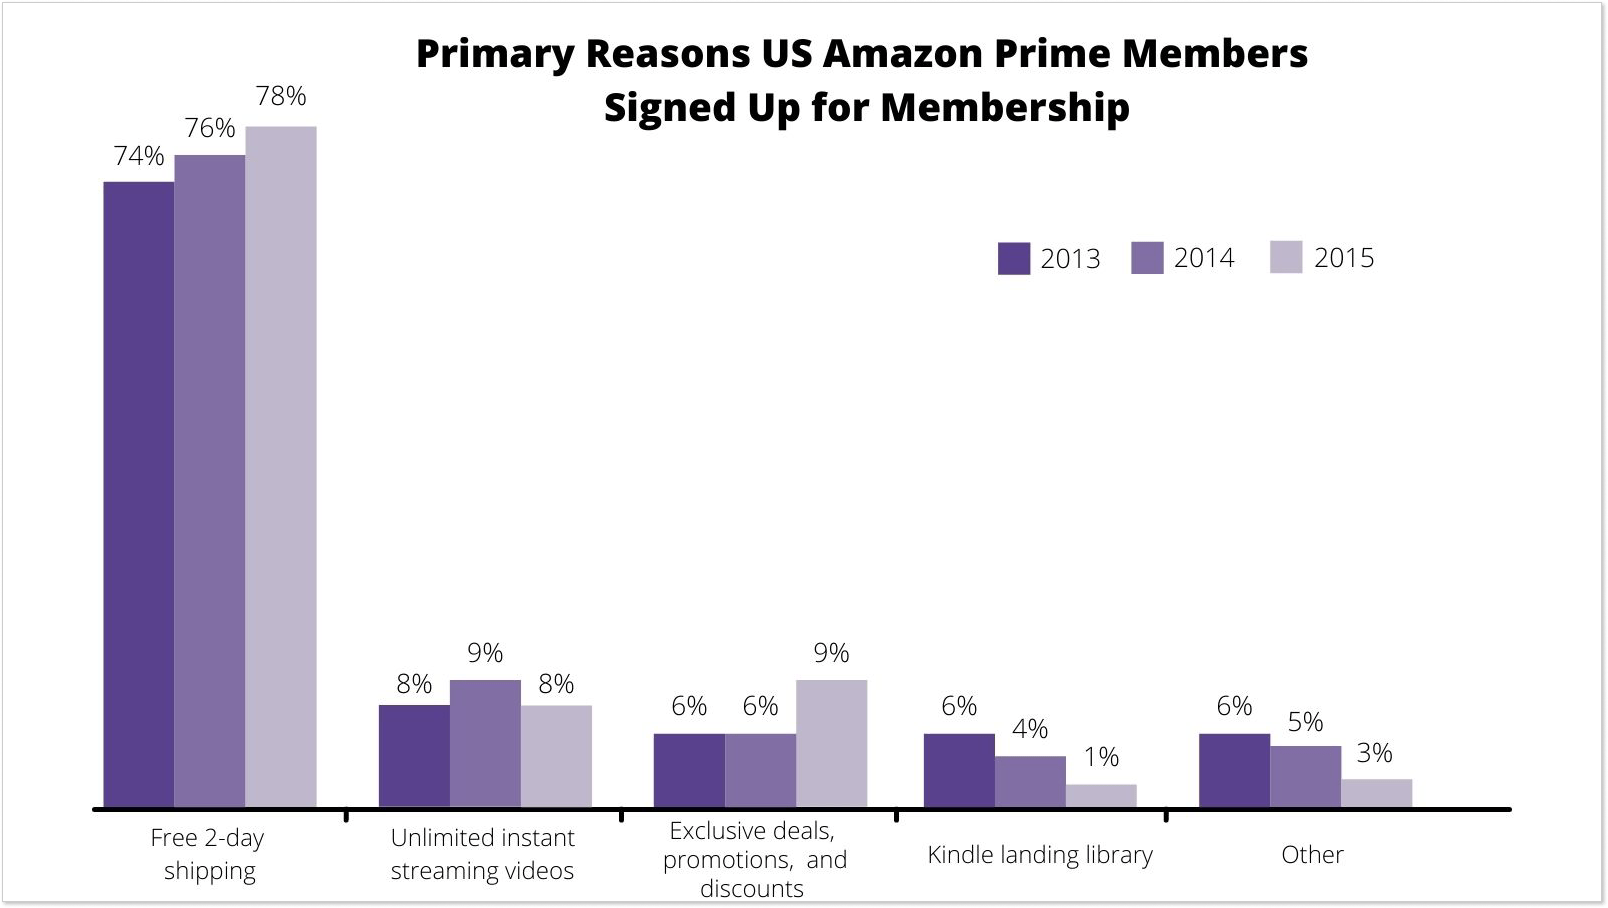 Why Amazon Prime members signed up for membership